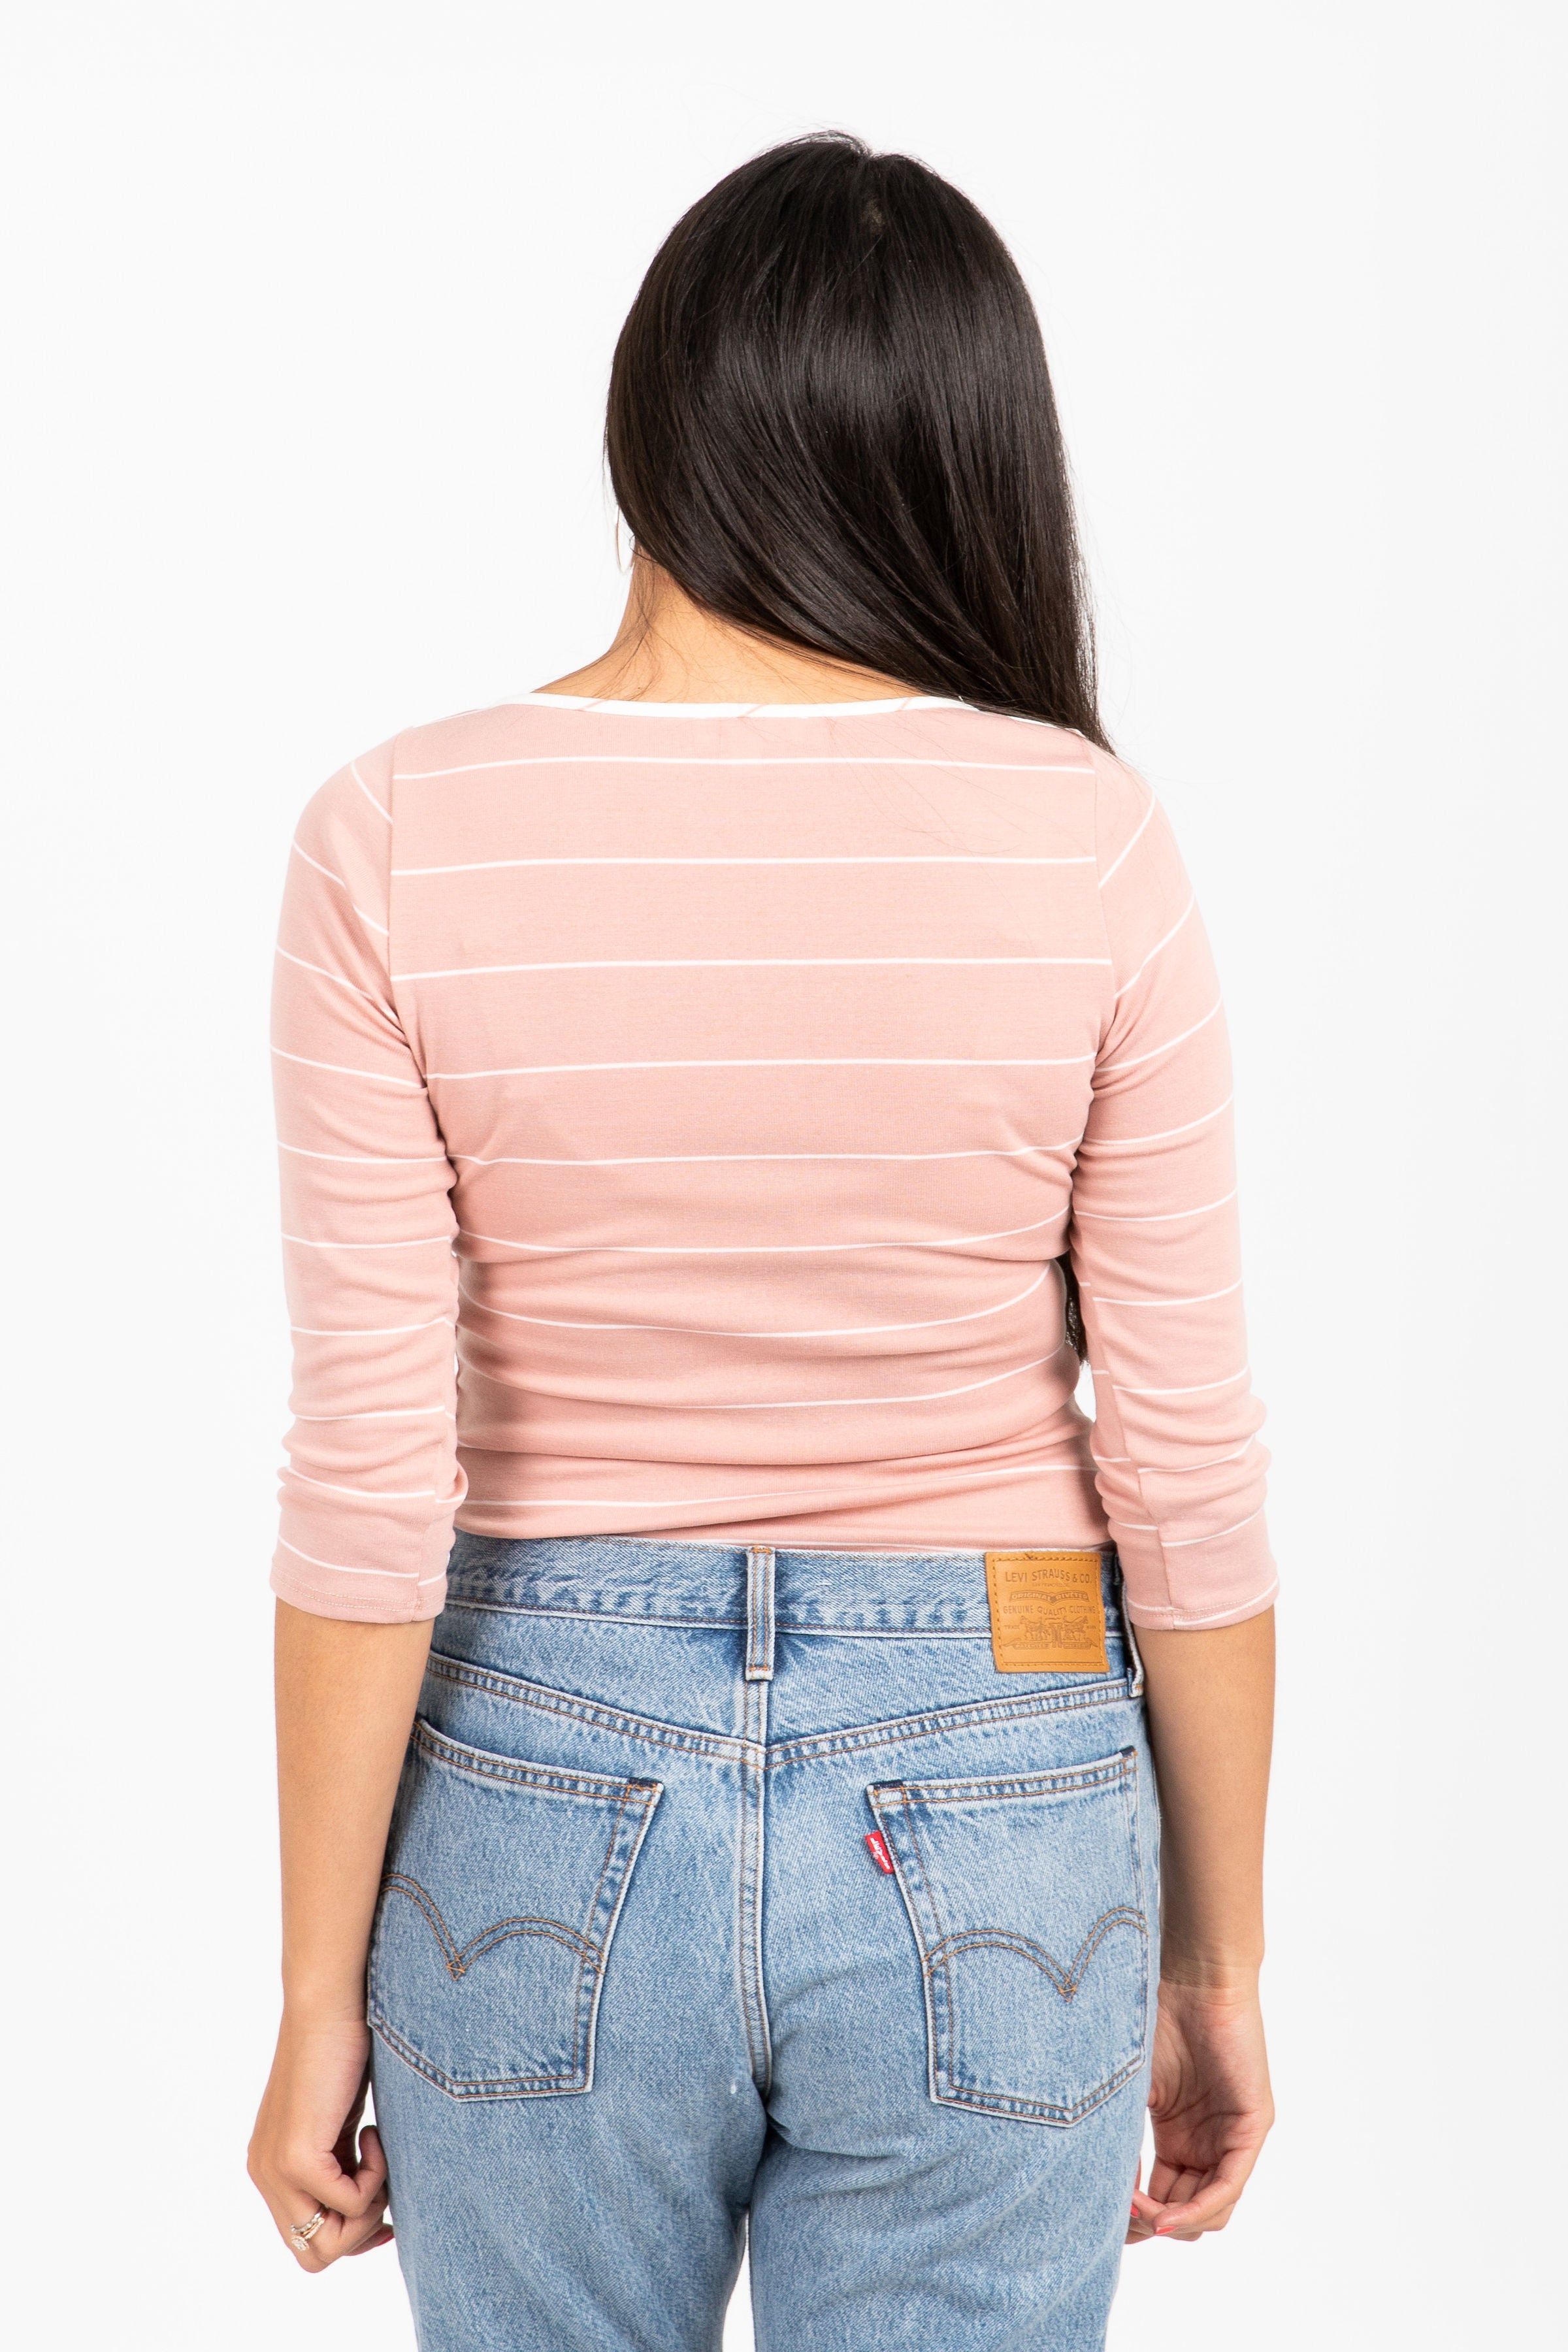 The Pinkie Striped Crew Blouse in Rose